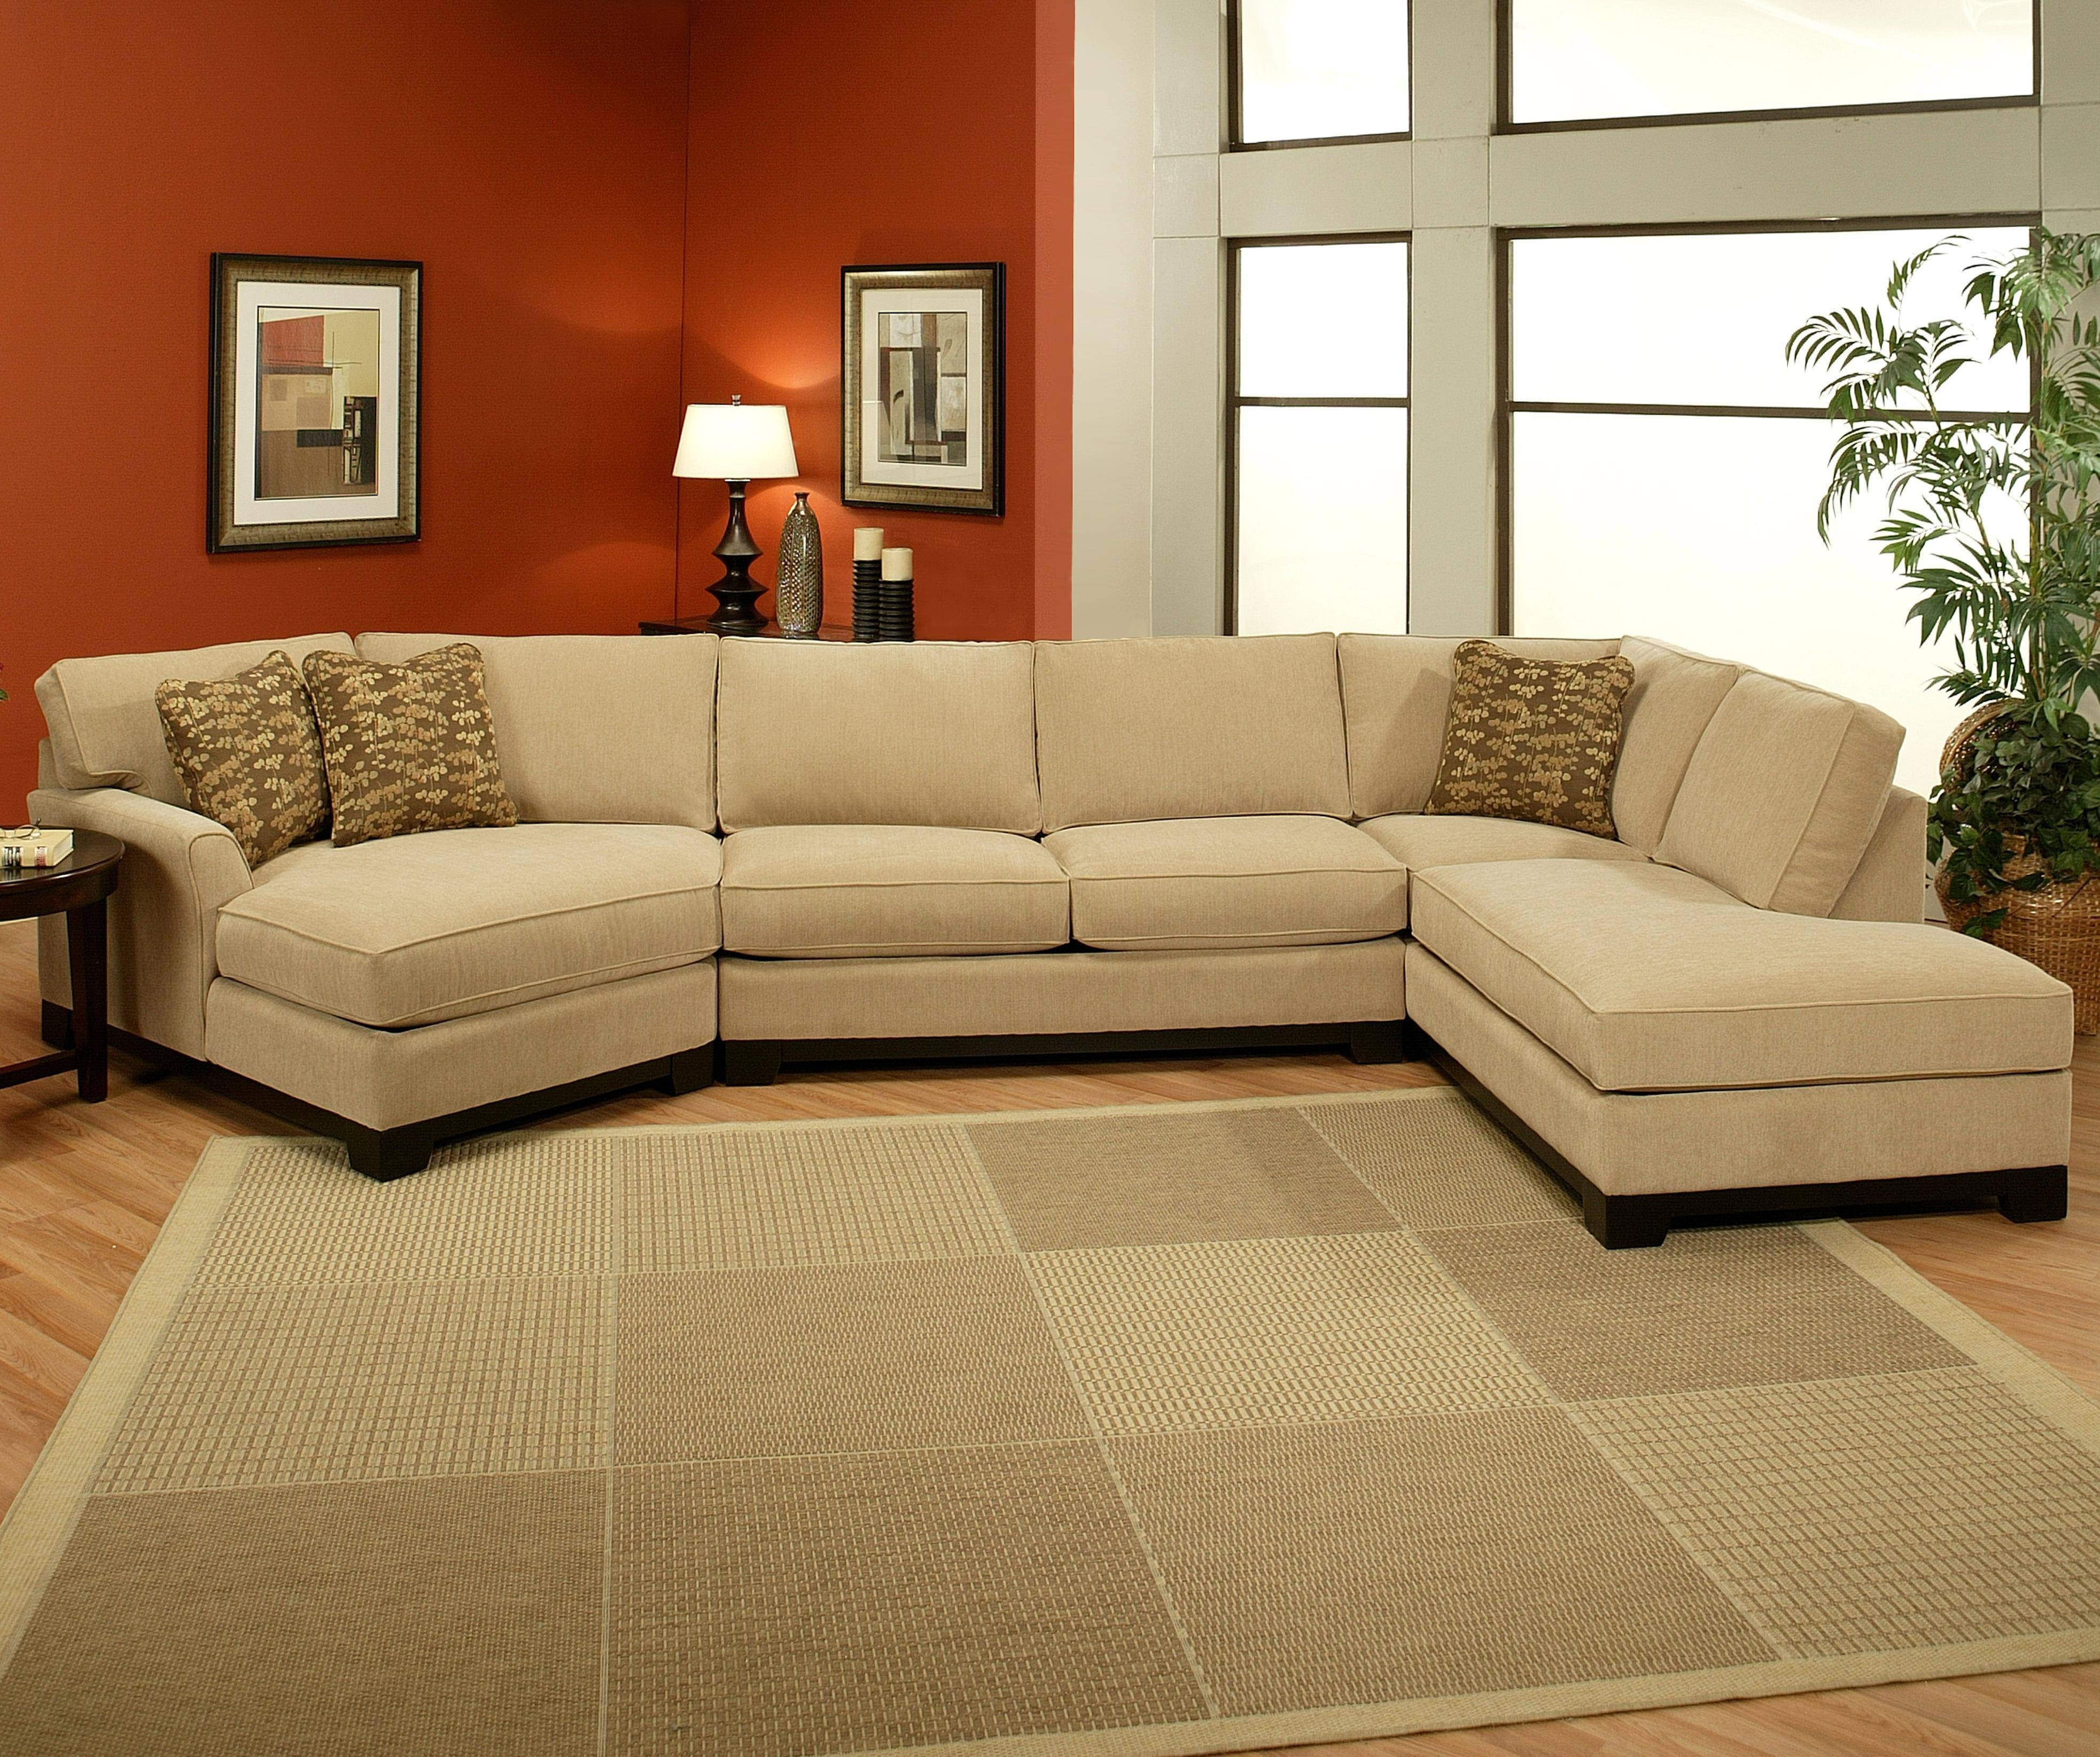 Latest Trend Of Sectional Sofa With Cuddler Chaise 81 In Eco intended for Eco Friendly Sectional Sofa (Image 23 of 30)